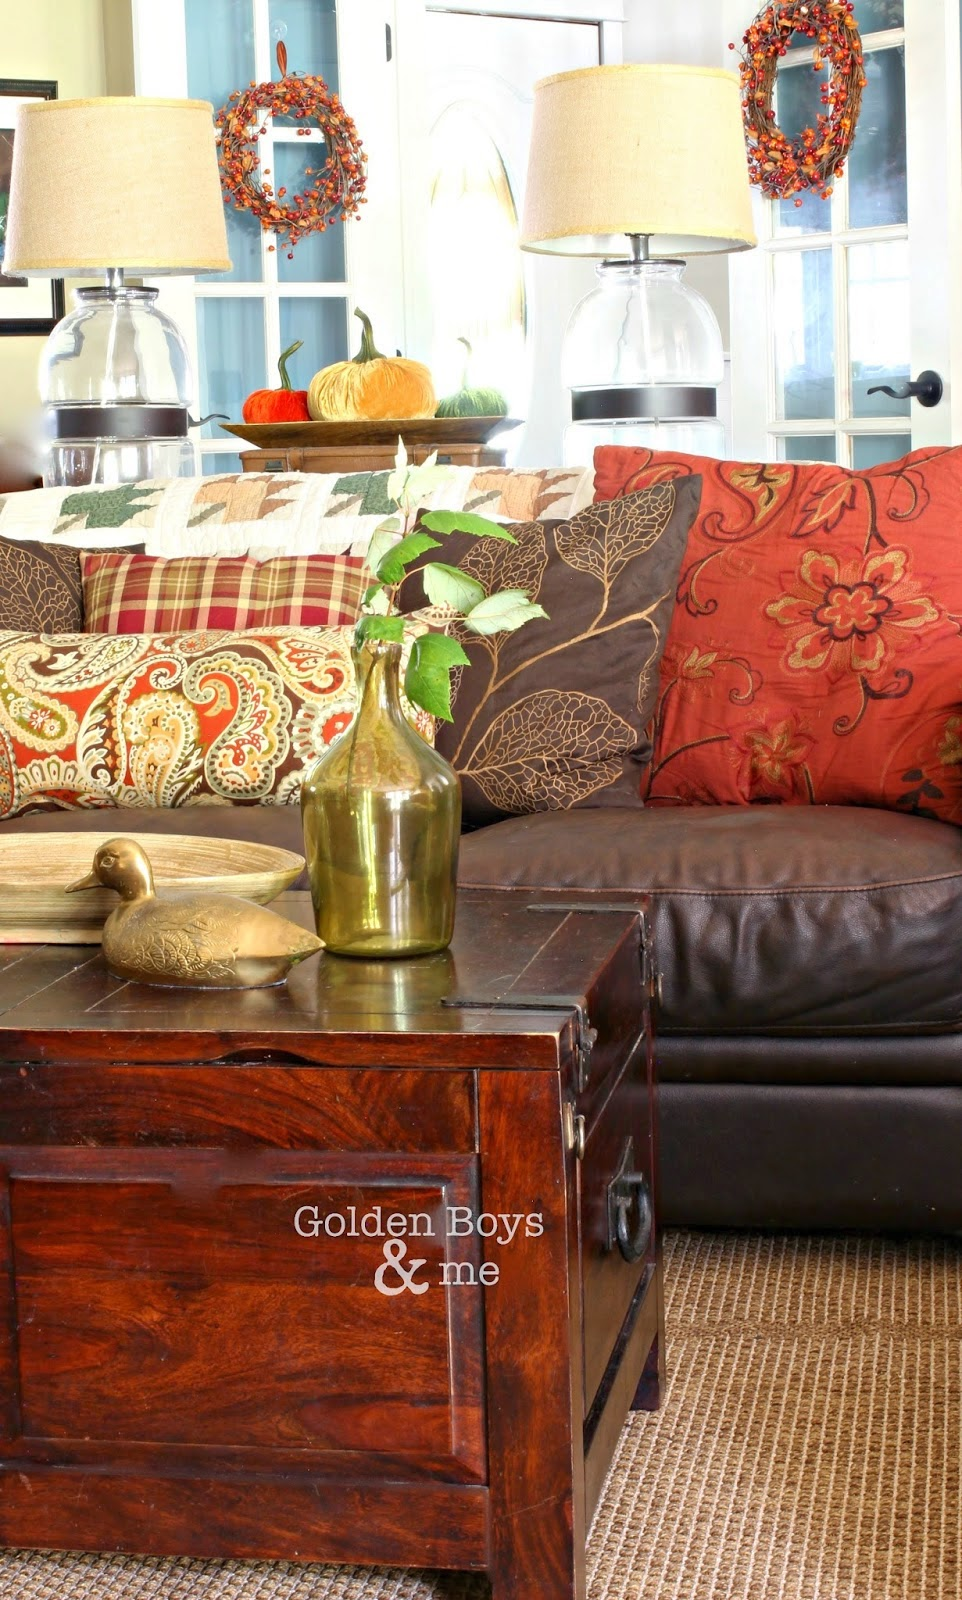 Brown Leather Couches Living Room Decor Red Accents: Golden Boys And Me: Finding My Own Style {with Inspiration